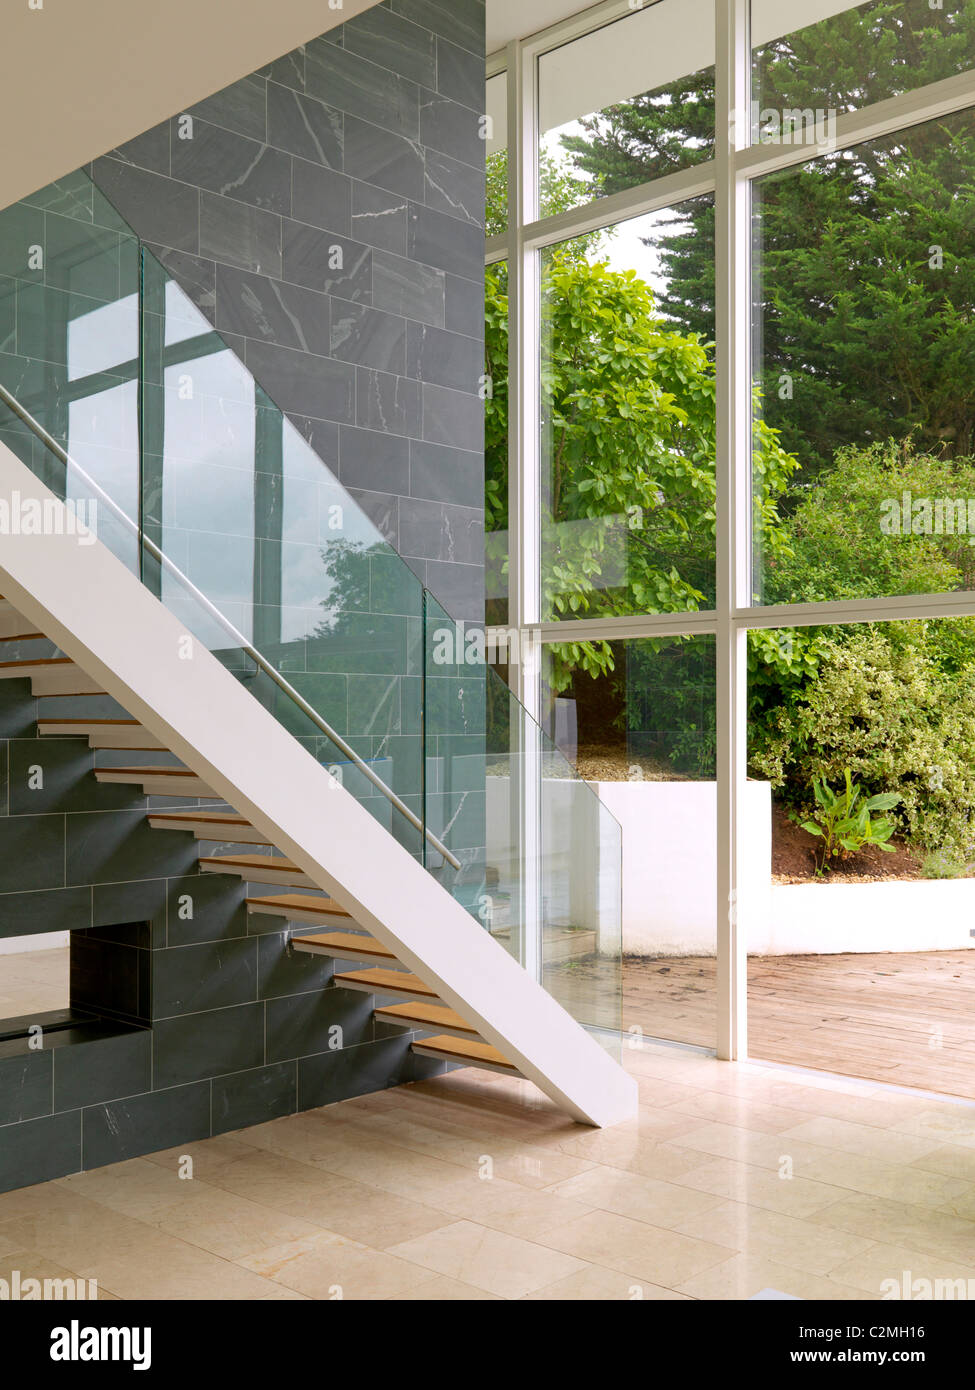 Pease House, Bristol, Private House that apperaed on Grand Designs - Dubbed the Modernist Sugar Cube. - Stock Image